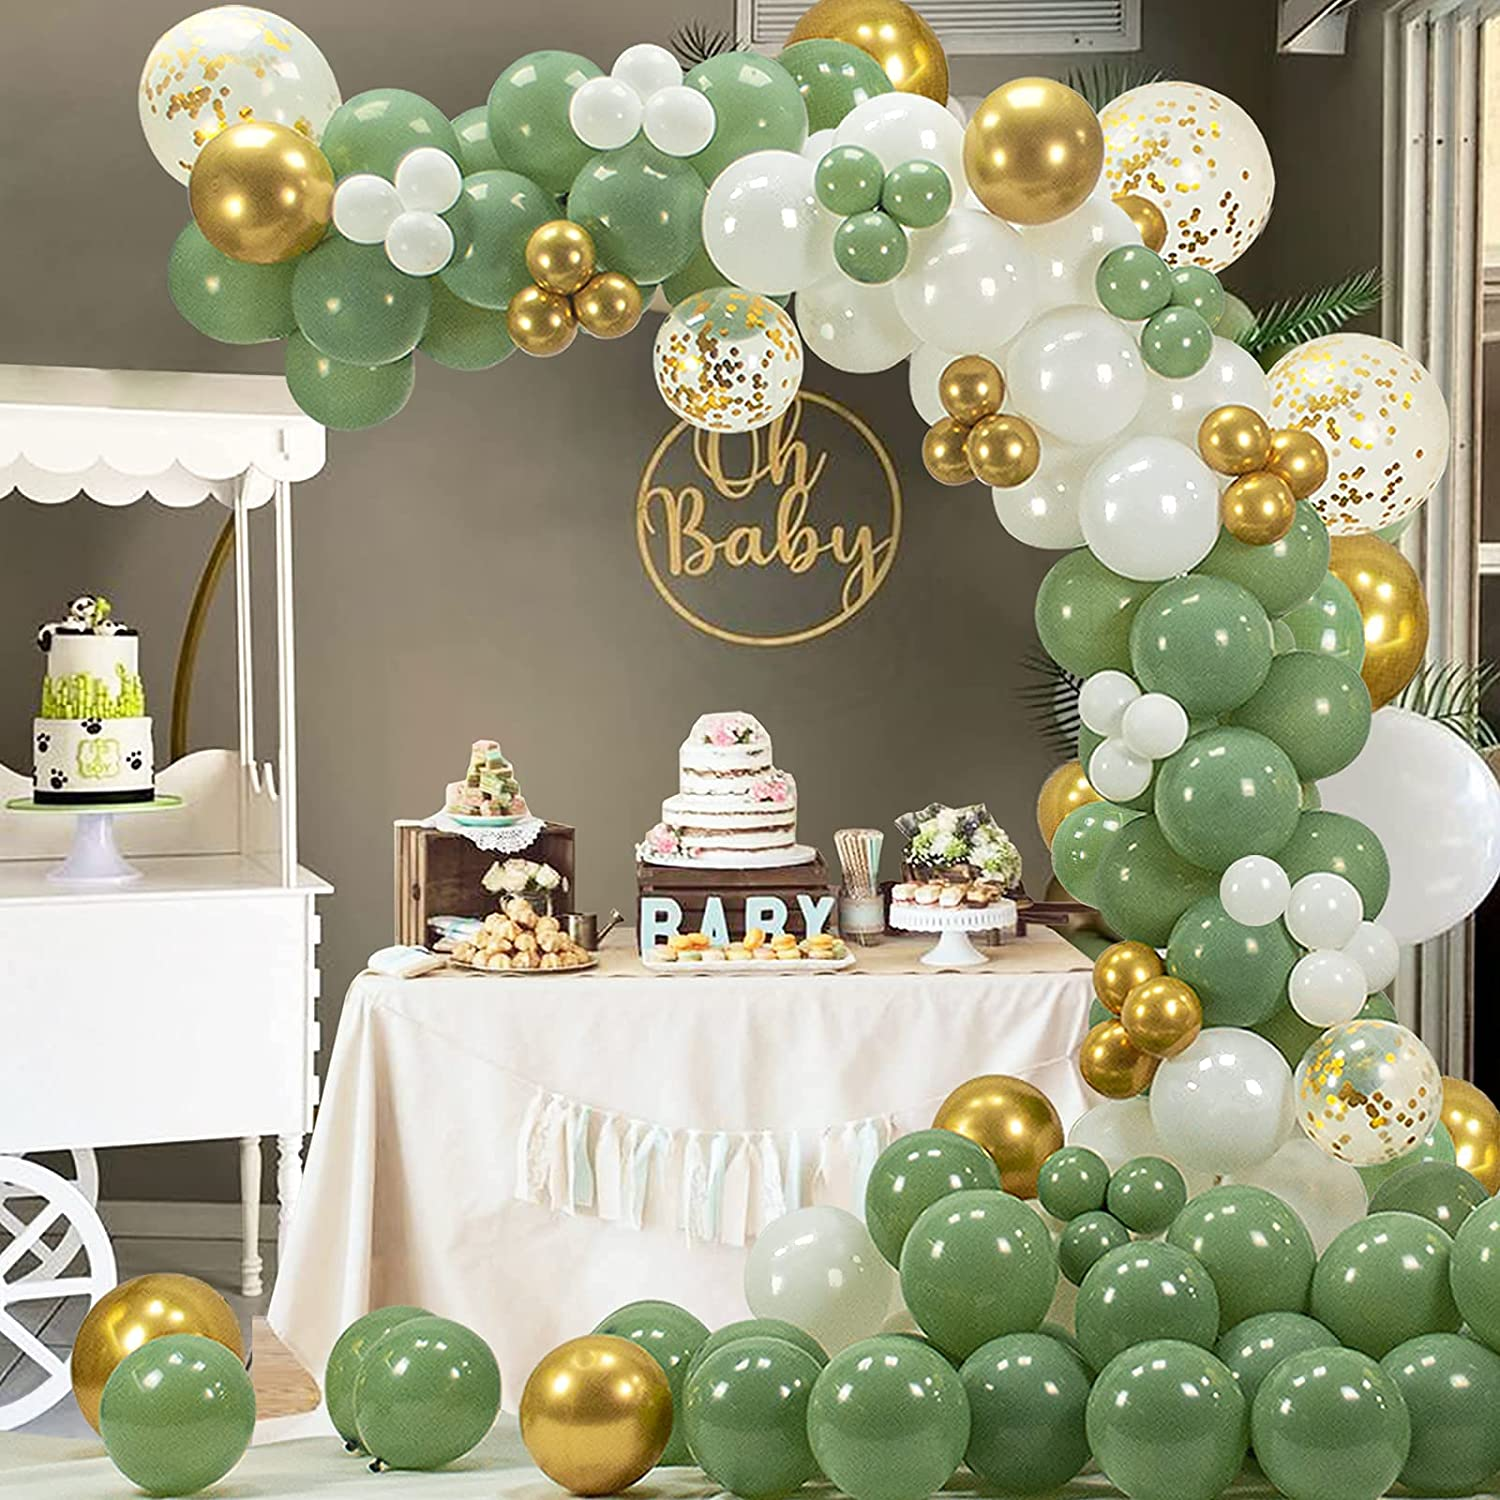 Green Balloon Garland Arch Kit, 137PCS Olive Green Gold Metallic Confetti White Balloons for Bridal Wedding Baby Shower Birthday Bachelorette Party Decorations